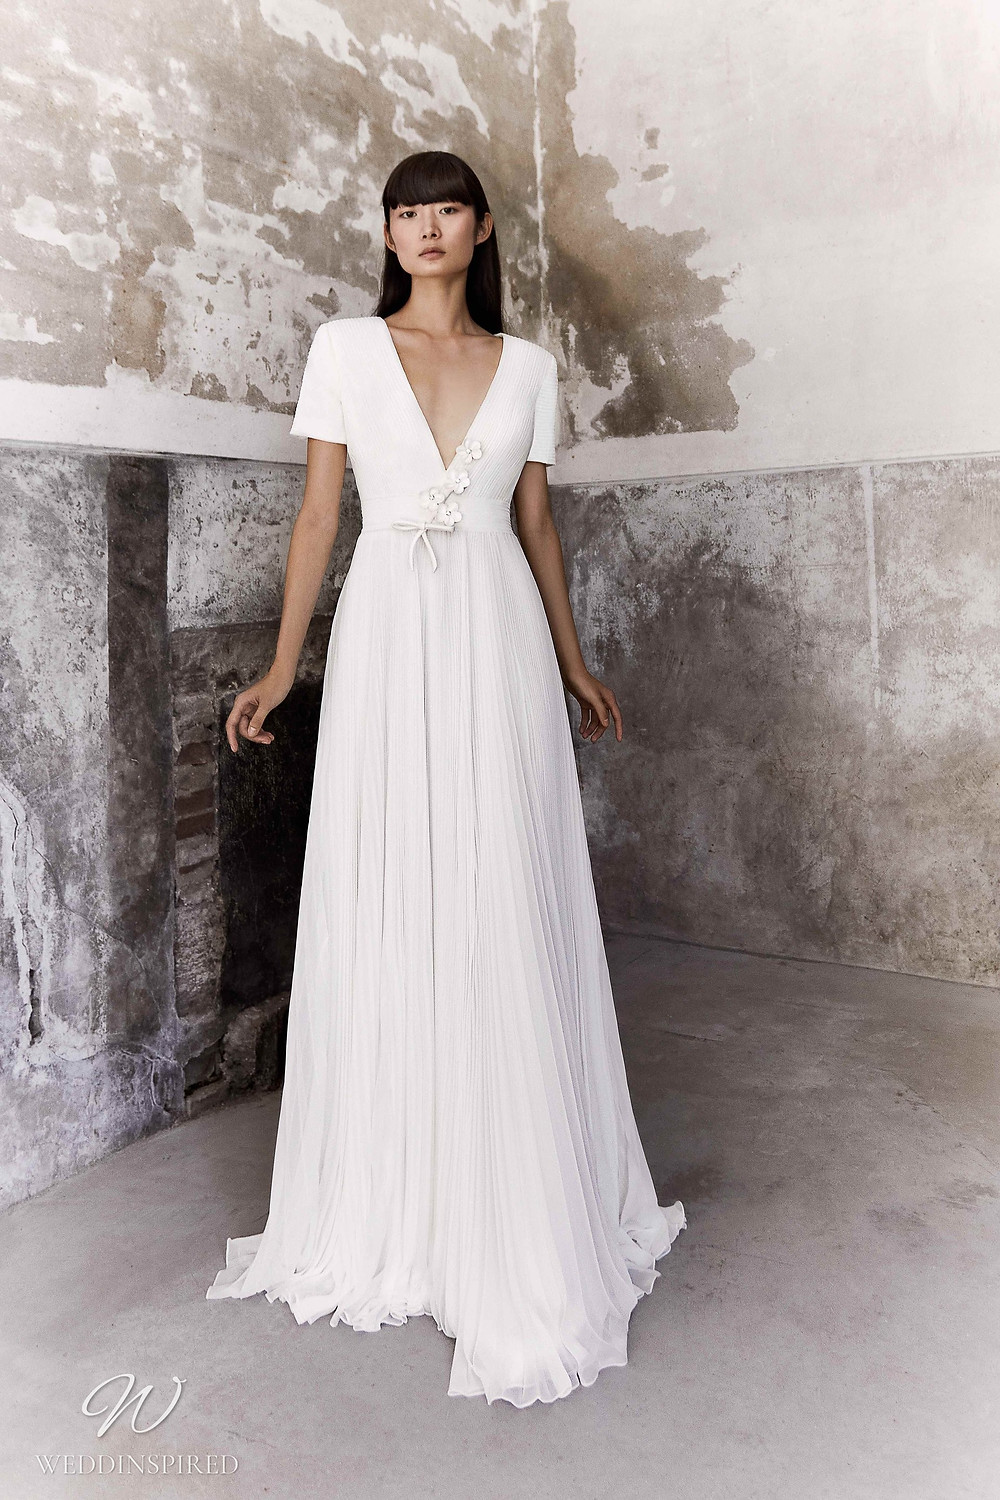 A Viktor & Rolf Fall/Winter 2021 simple A-line wedding dress with a v neck and short sleeves